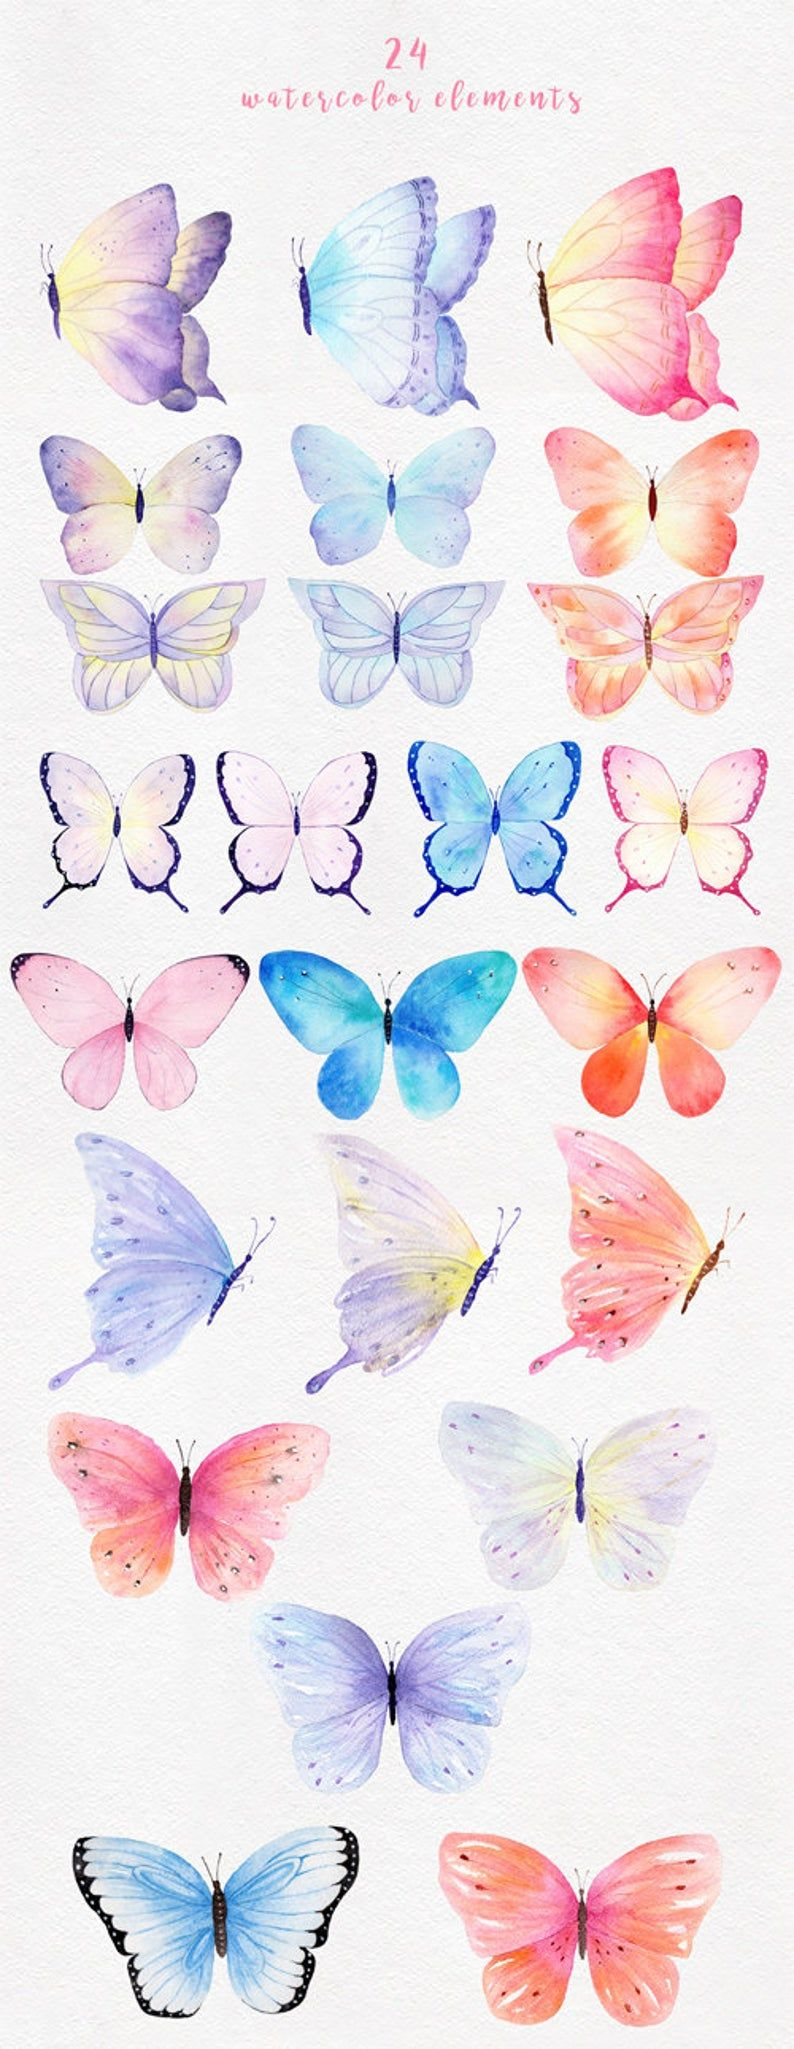 Watercolor Butterfly Clipart 24 Separate Png Element Diy Cliparts For Wedding Invitation Greeting Card Planner And Sticker Butterfly Watercolor Butterfly Clip Art Butterfly Art